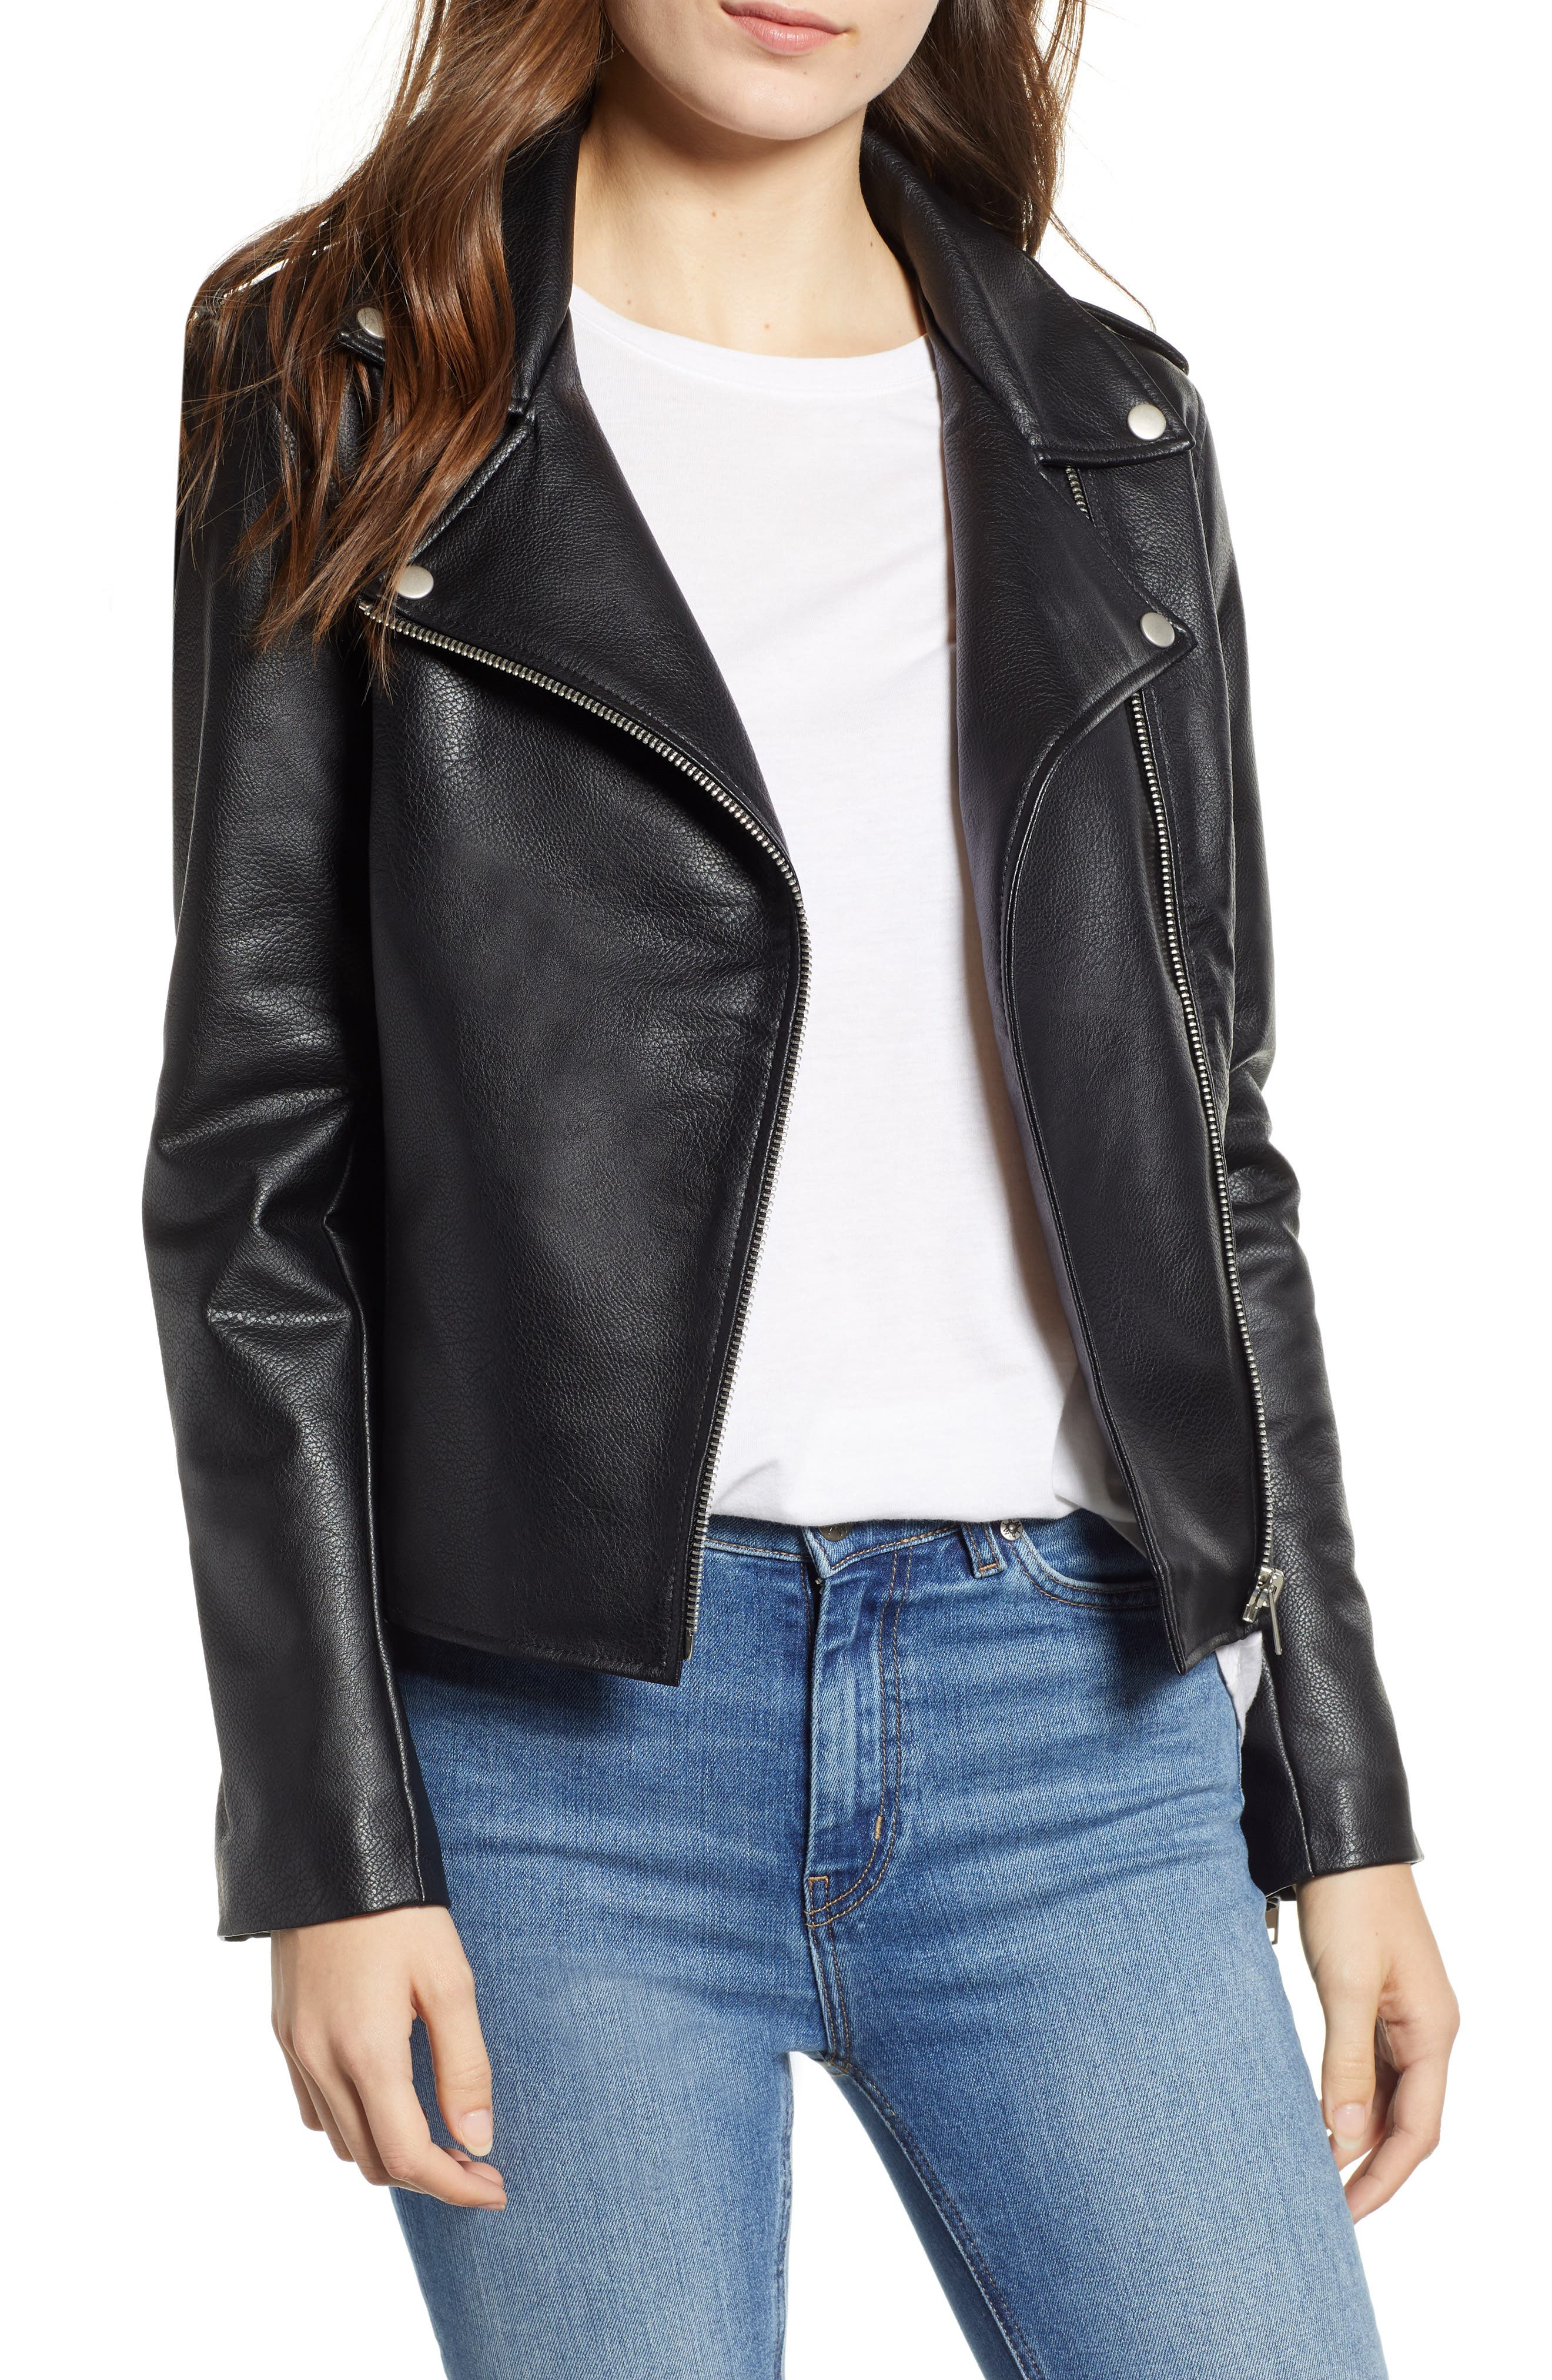 Just Ride Faux Leather Jacket,                             Main thumbnail 1, color,                             BLACK